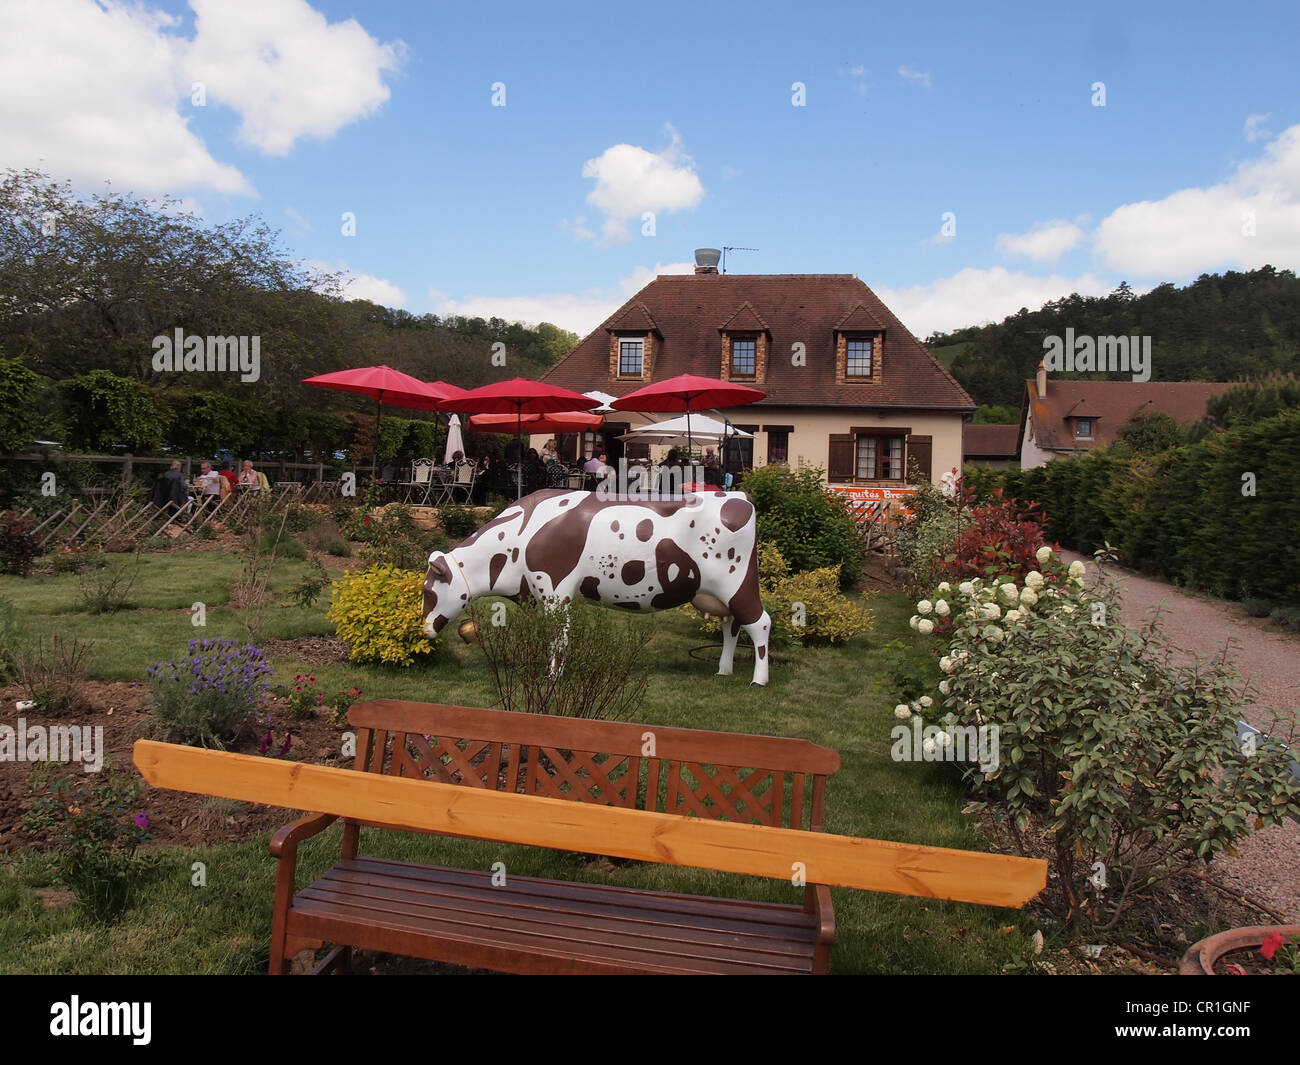 Asia Bistro Siegen Farmhouse Gardens Stock Photos Farmhouse Gardens Stock Images